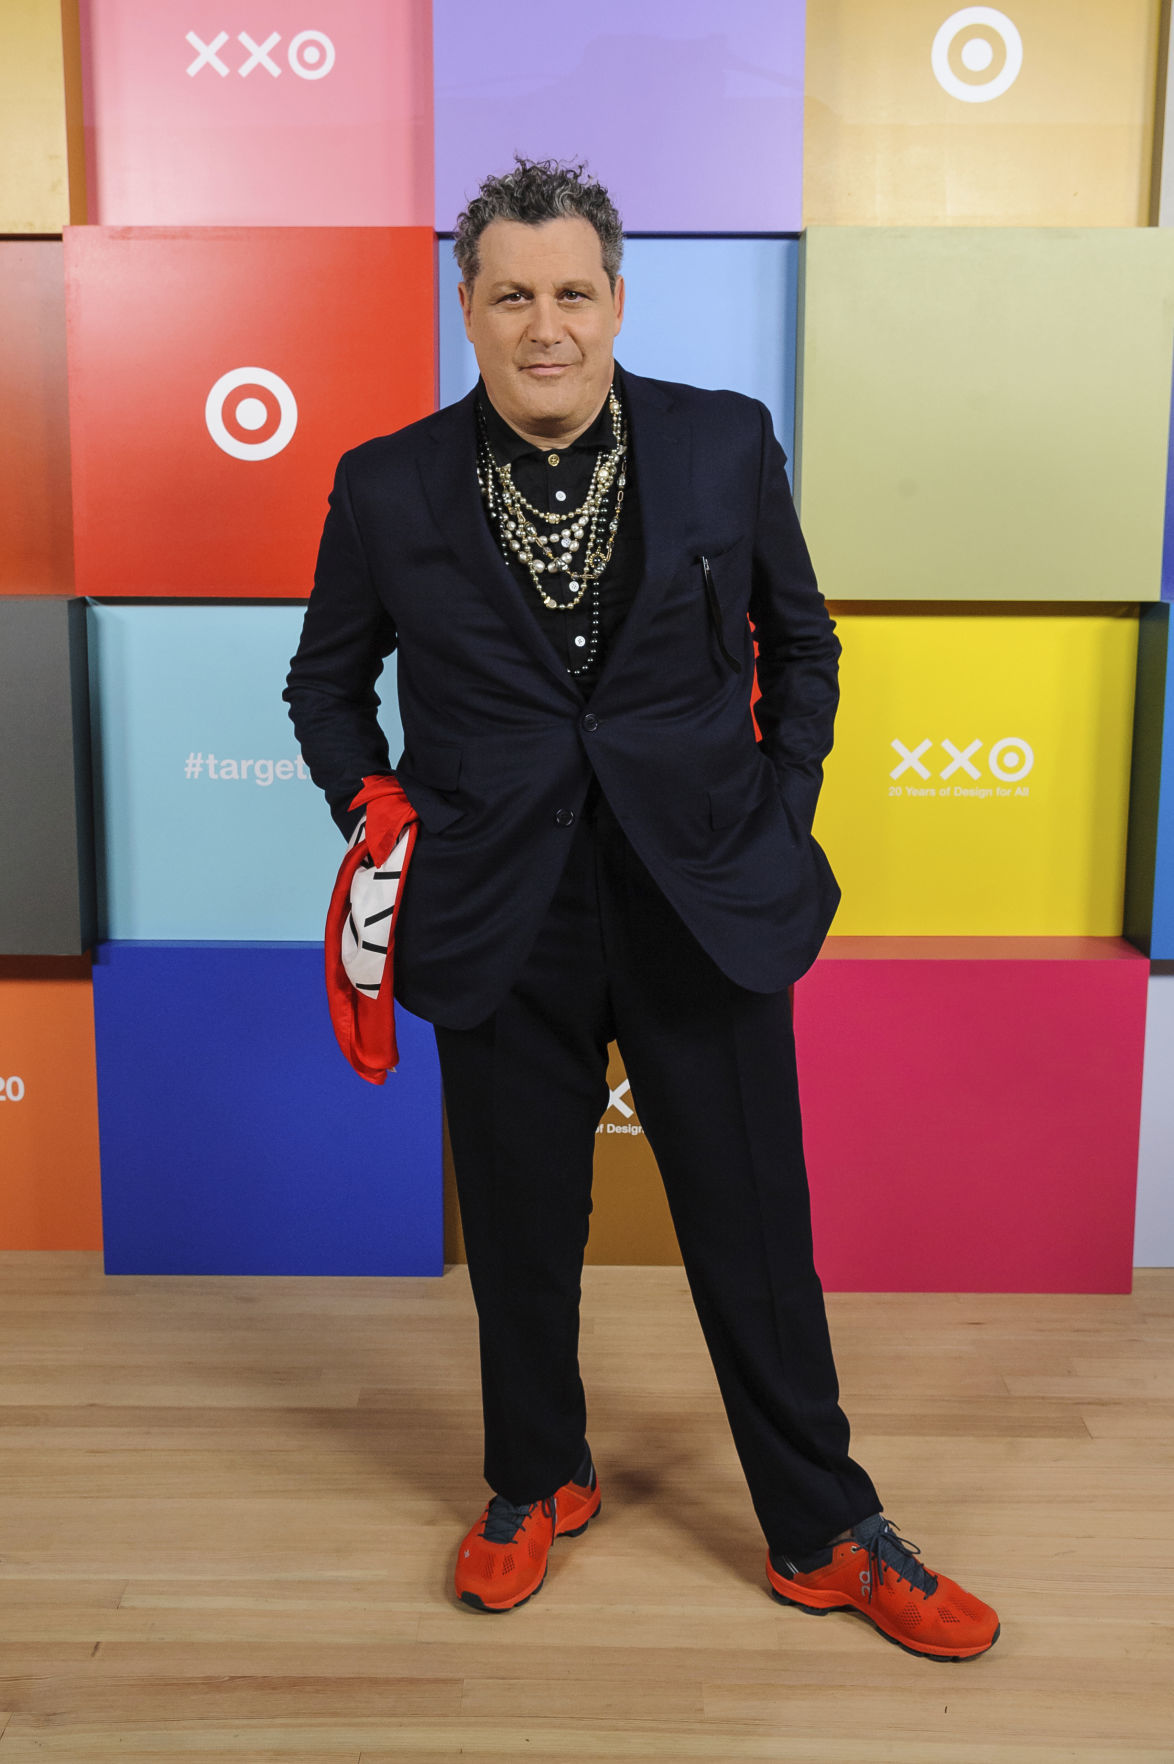 Target's 20th Anniversary Collection Launch Event